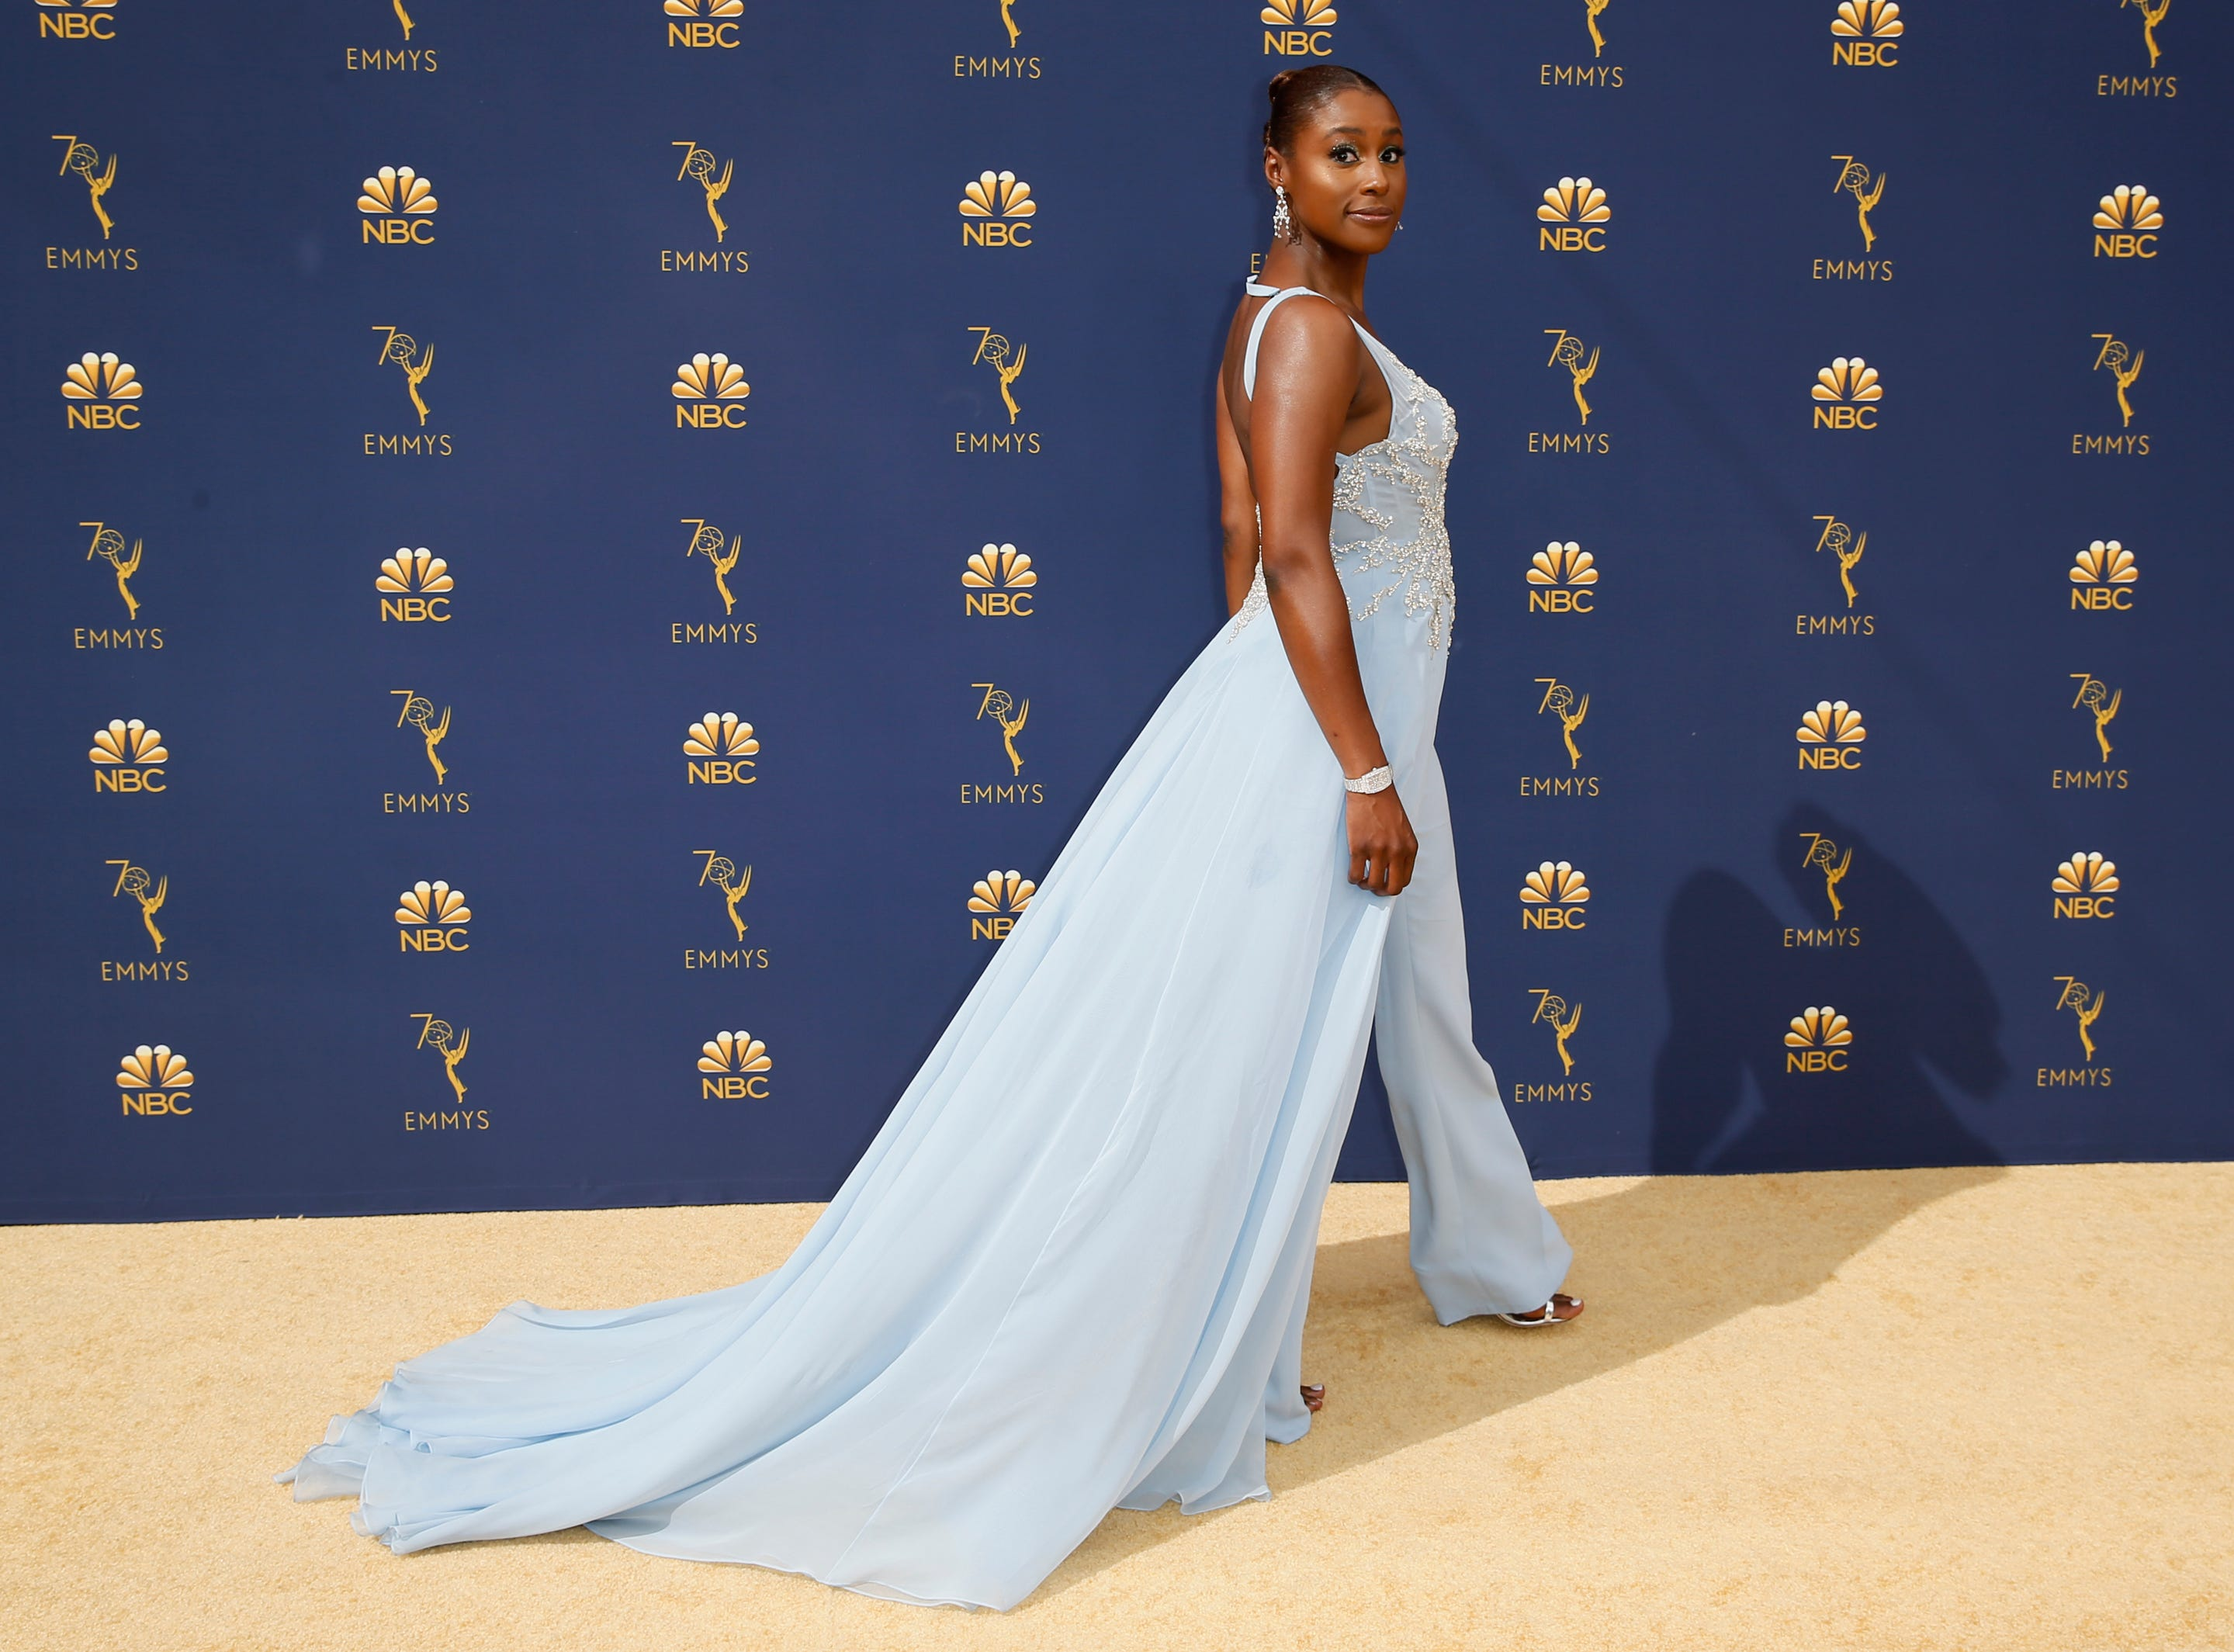 Issa Rae arrives at the 70th Primetime Emmy Awards on Monday, Sept. 17, 2018, at the Microsoft Theater in Los Angeles.